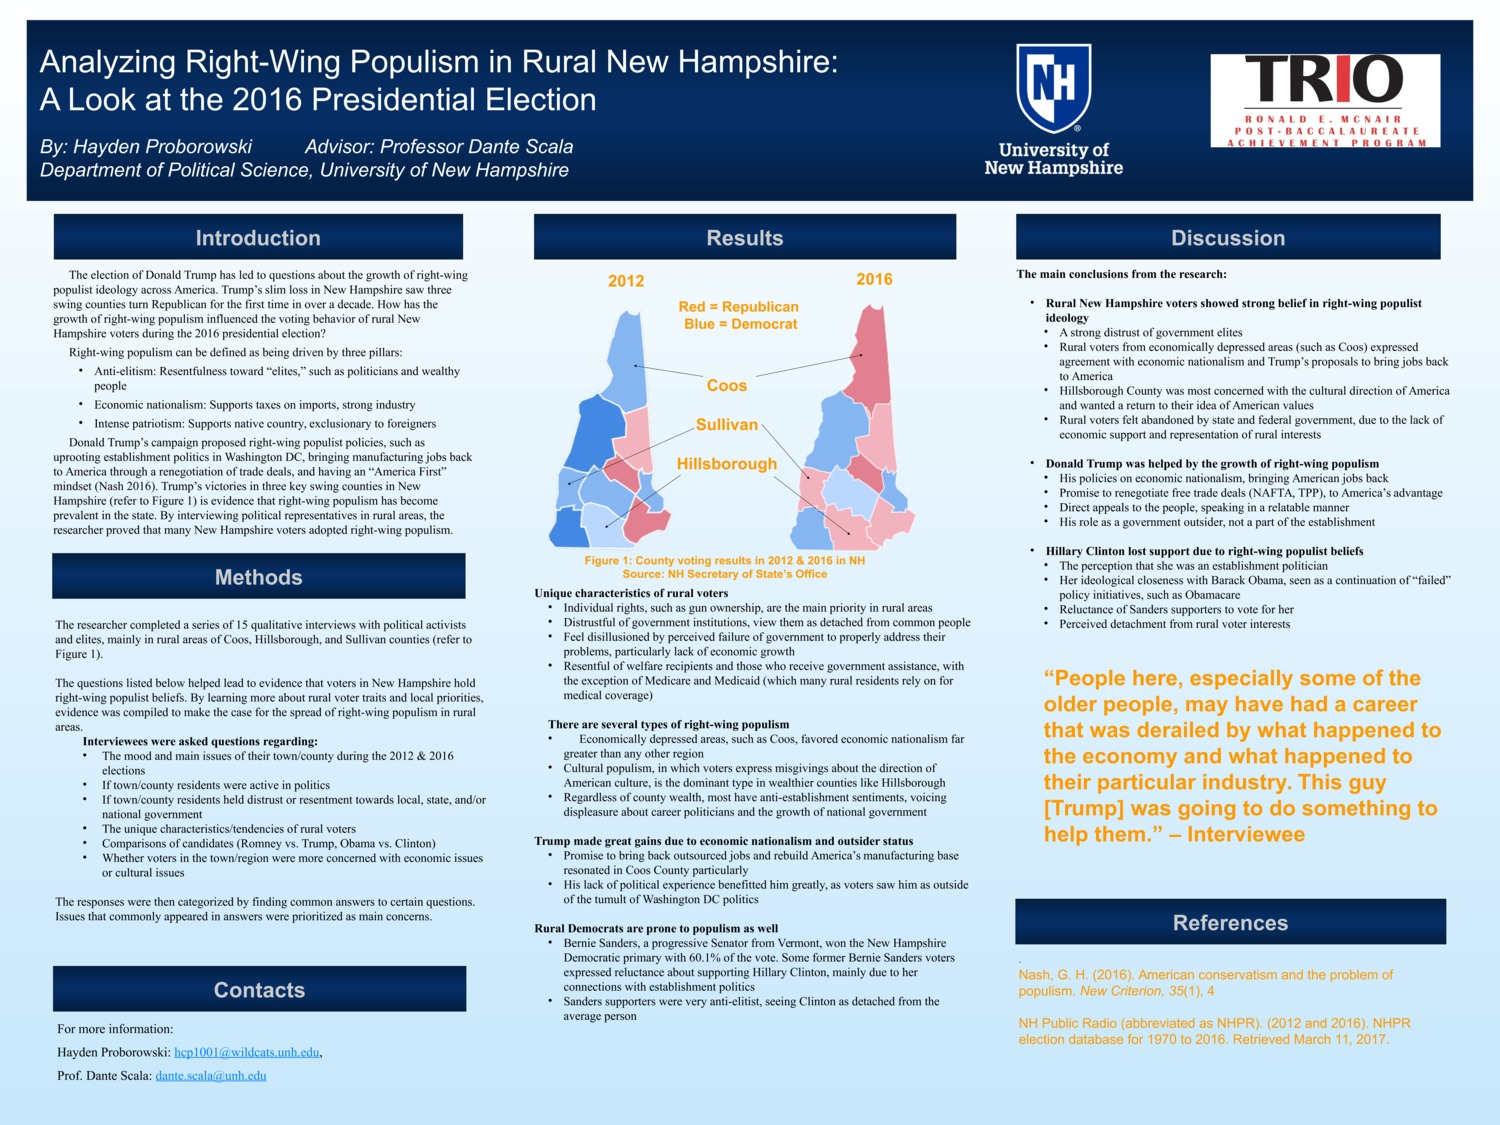 Analyzing Right-Wing Populism In Rural New Hampshire: A Look At The 2016 Presidential Election by hcp1001